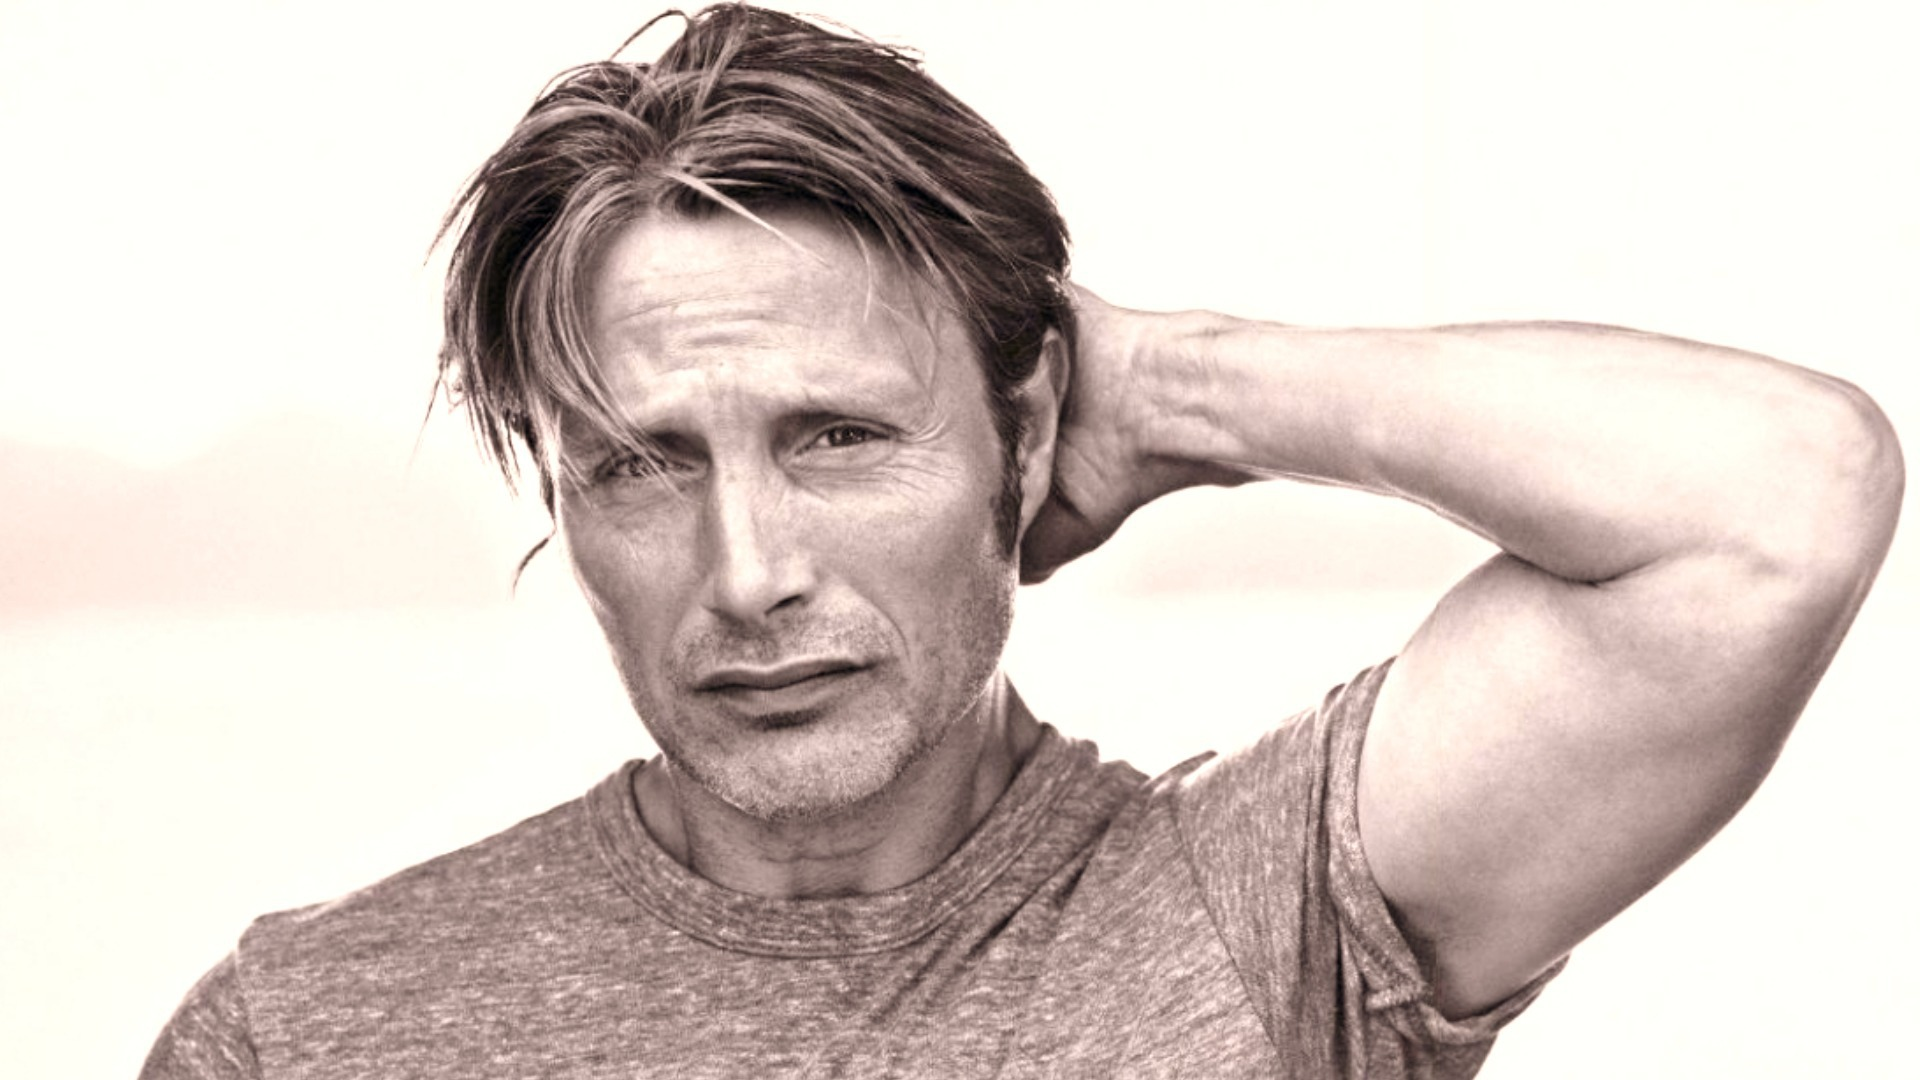 Mads Mikkelsen Wallpapers Images Photos Pictures Backgrounds